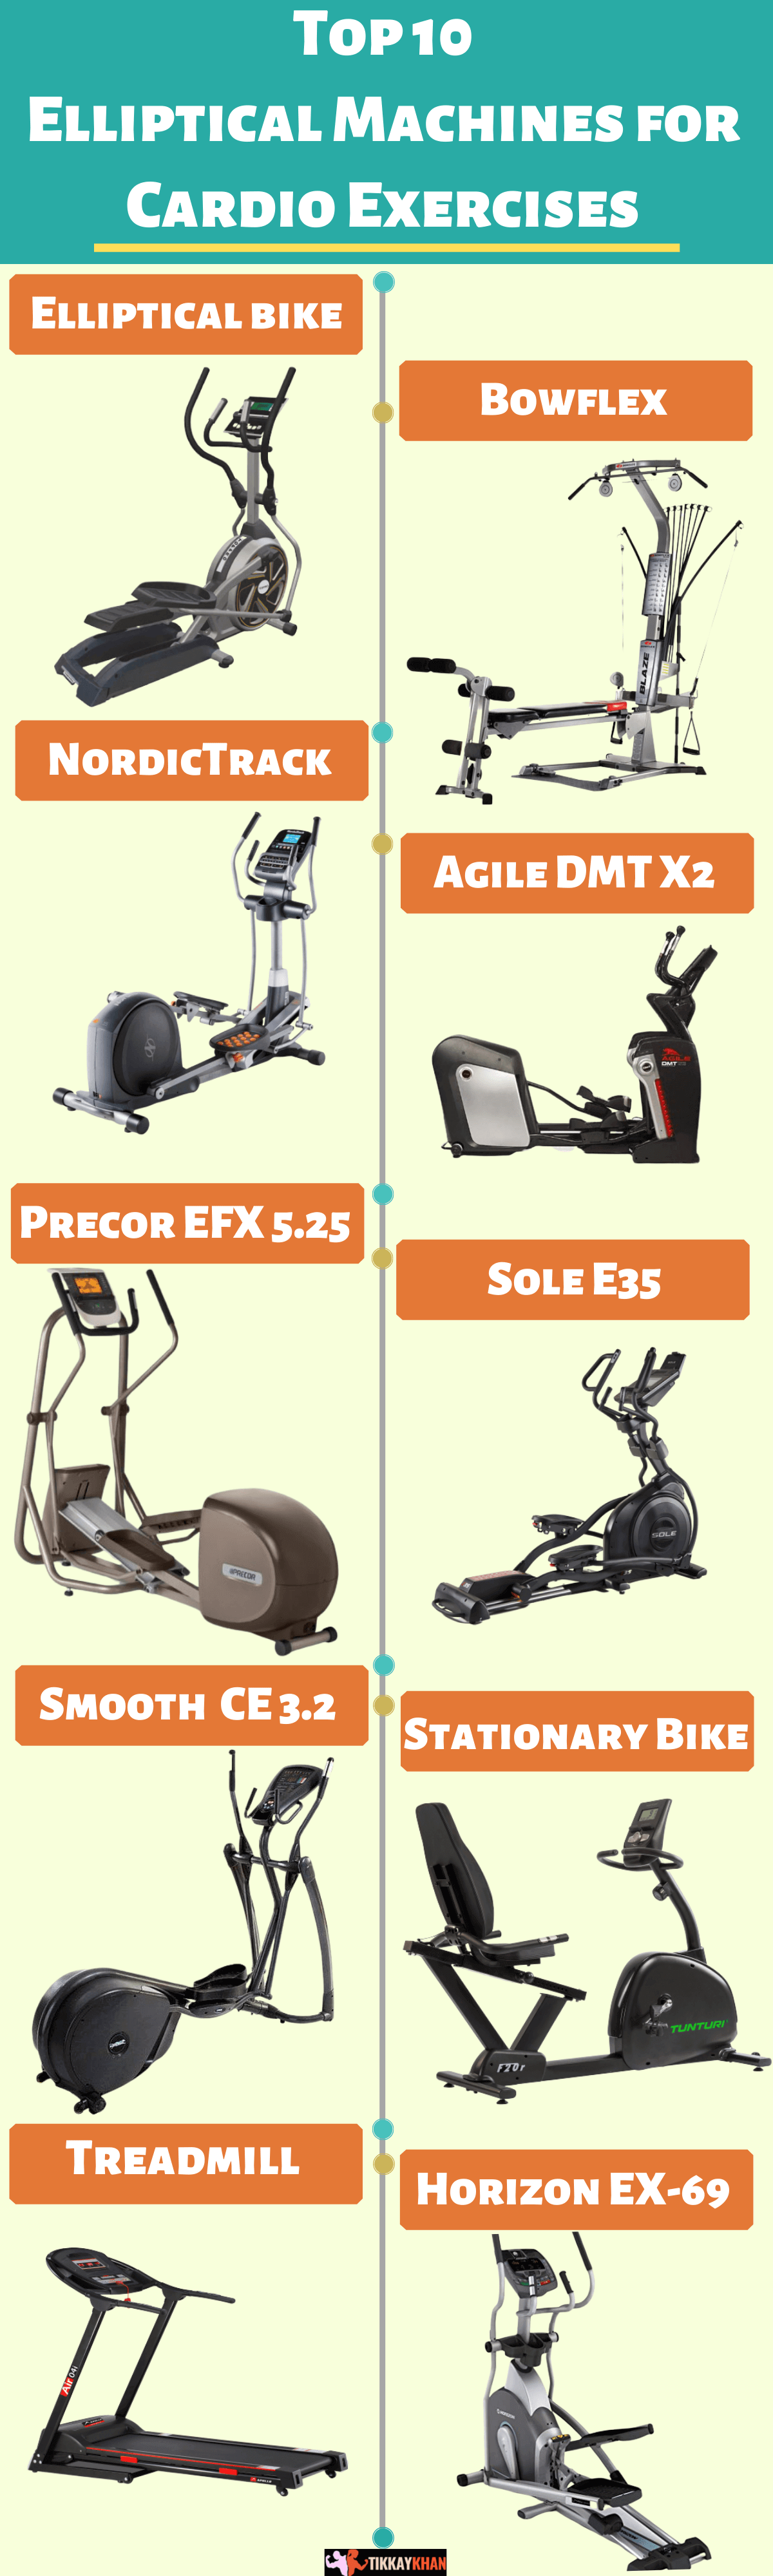 Top 10 Best Elliptical Machines for Cardio Exercises